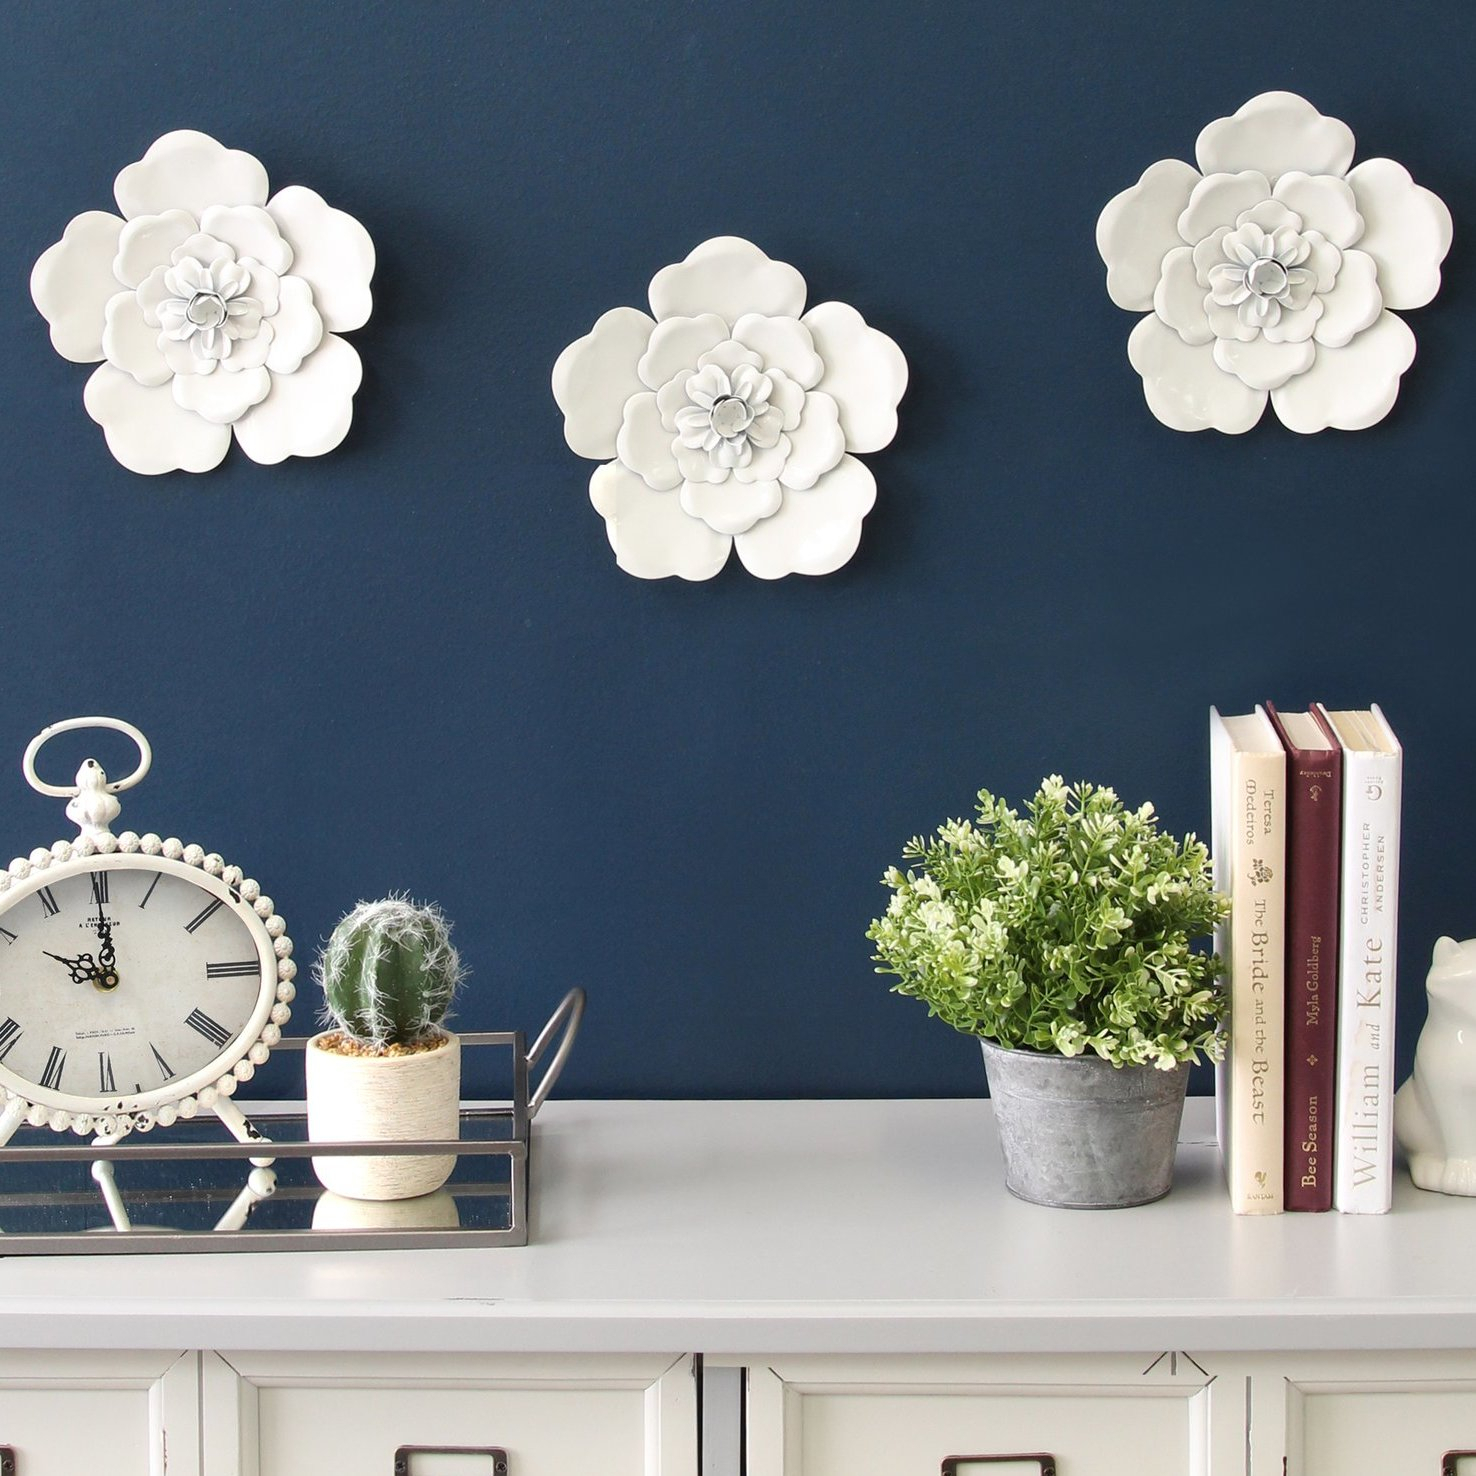 Wall Flower Decor | Wayfair Intended For Three Flowers On Vine Wall Decor (View 18 of 30)